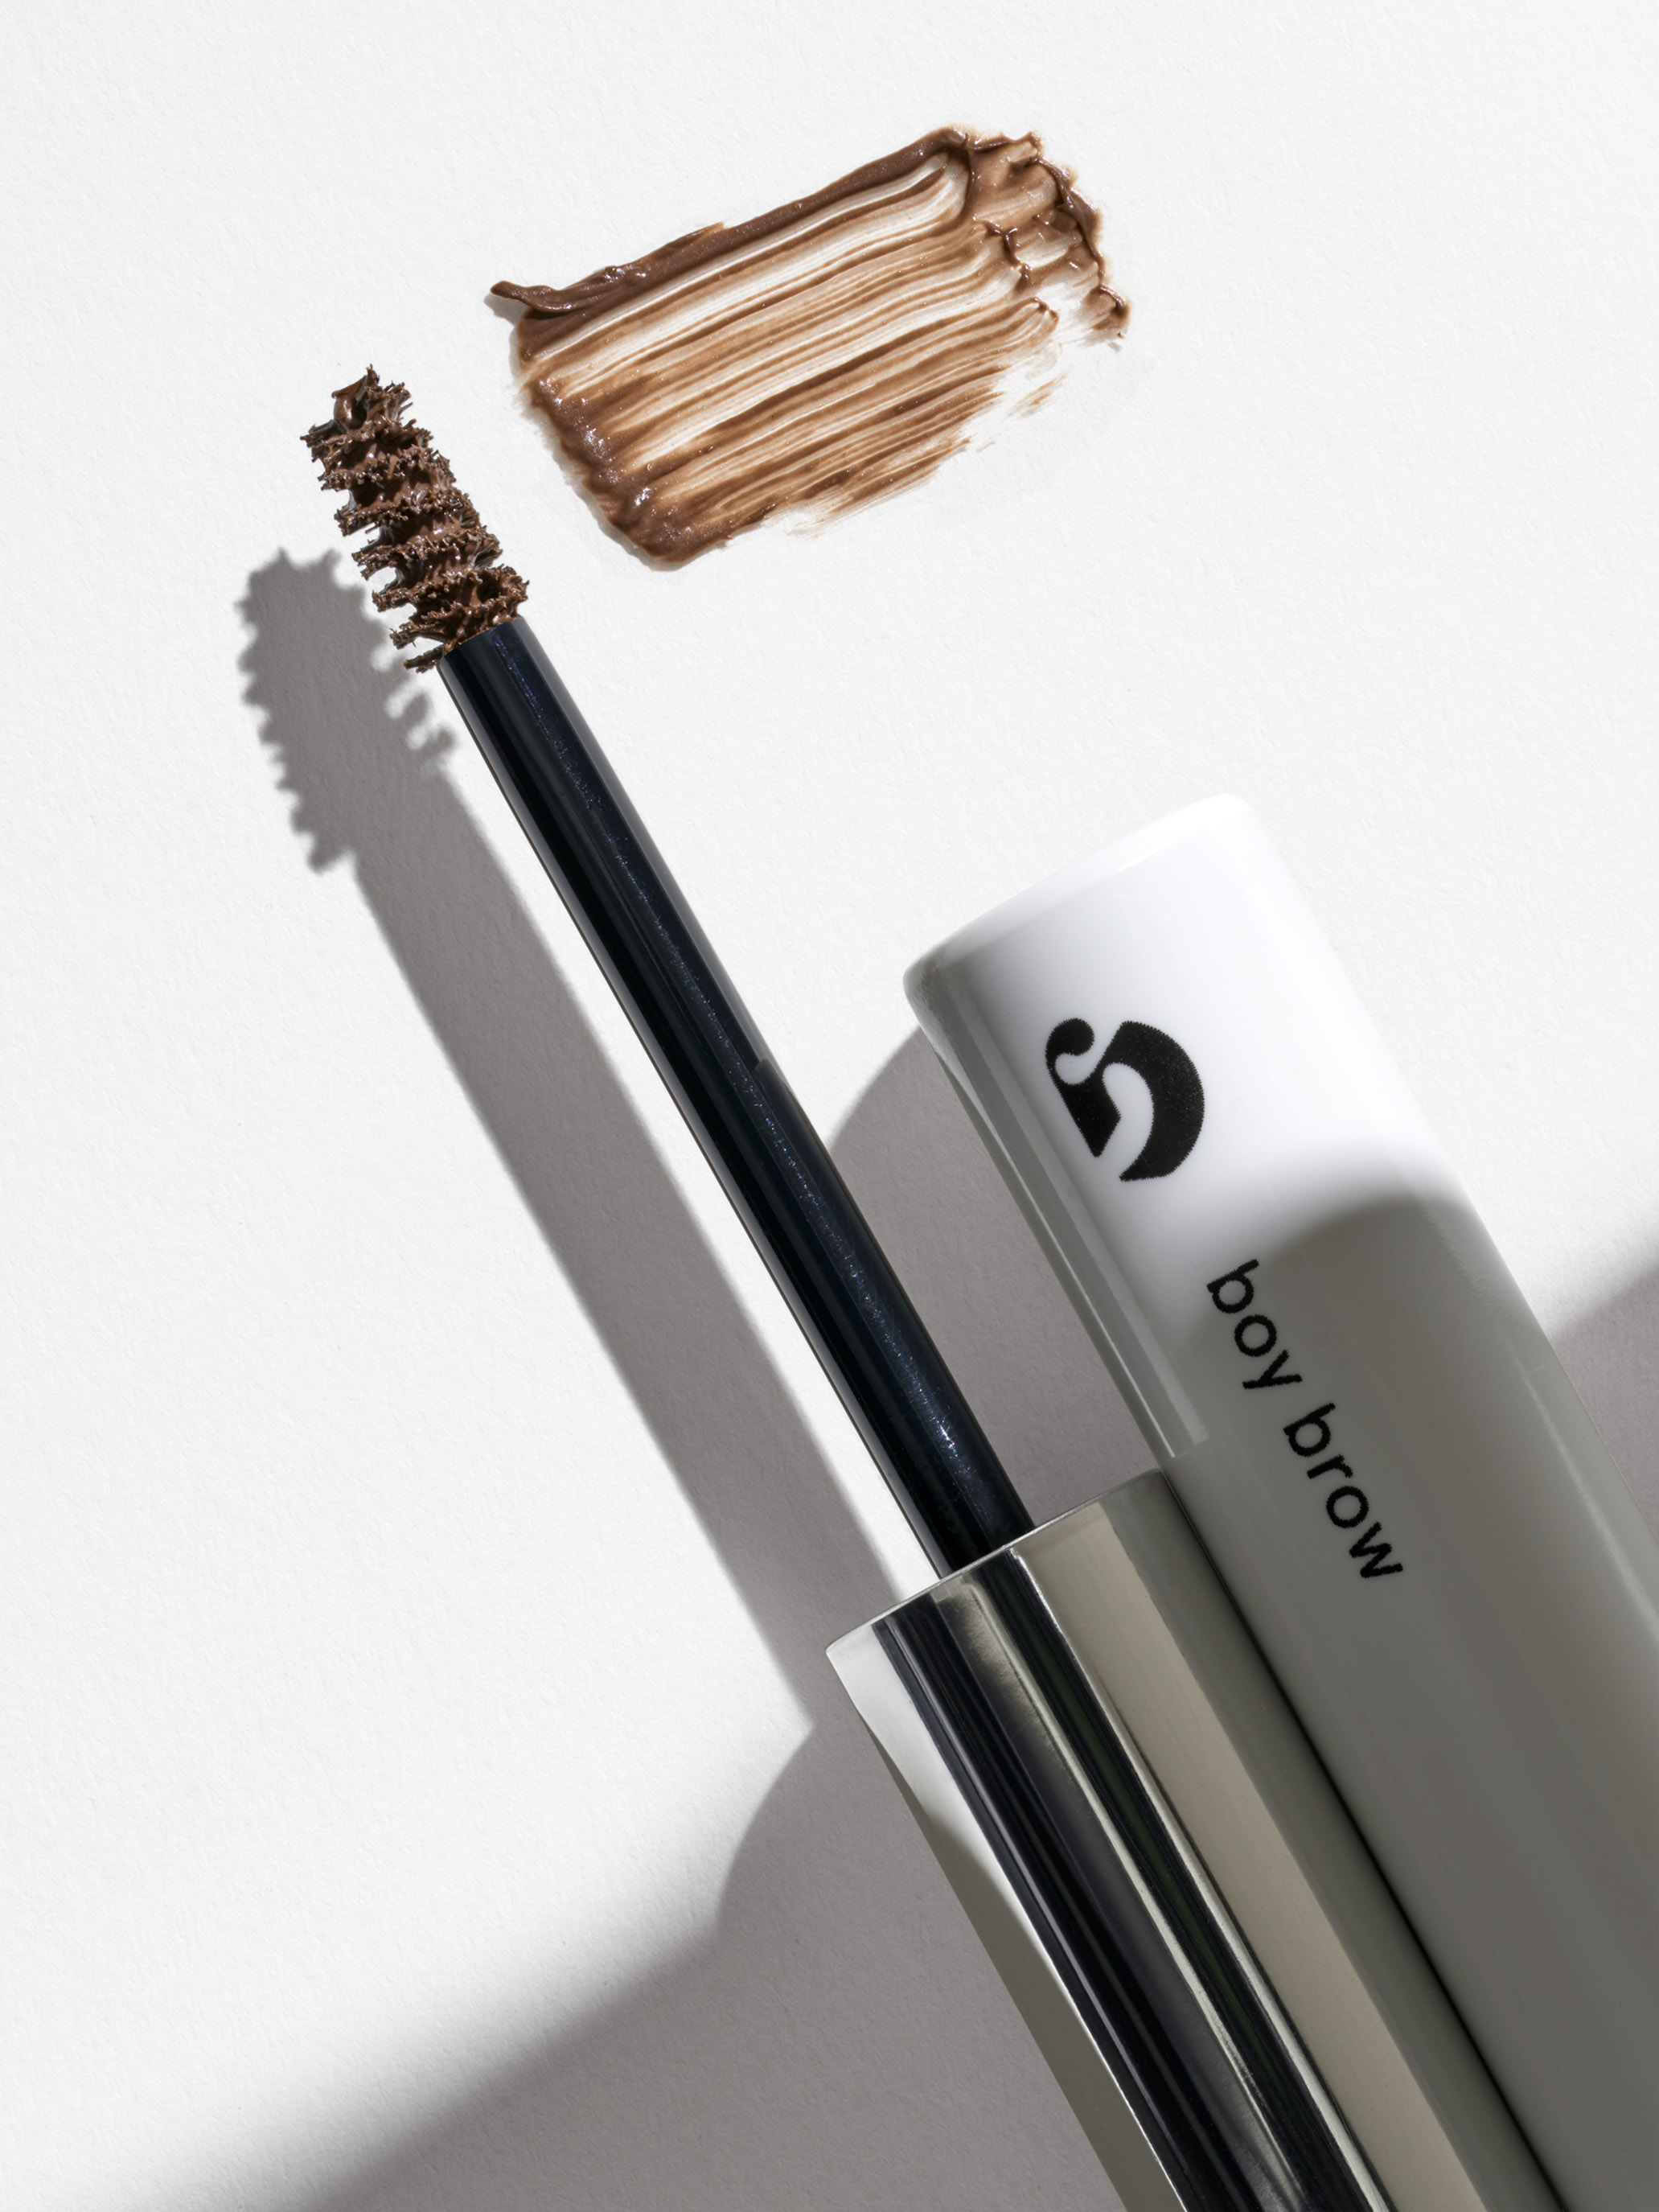 STAN Glossier Boy Brow Product with Open Wand and Texture Smear